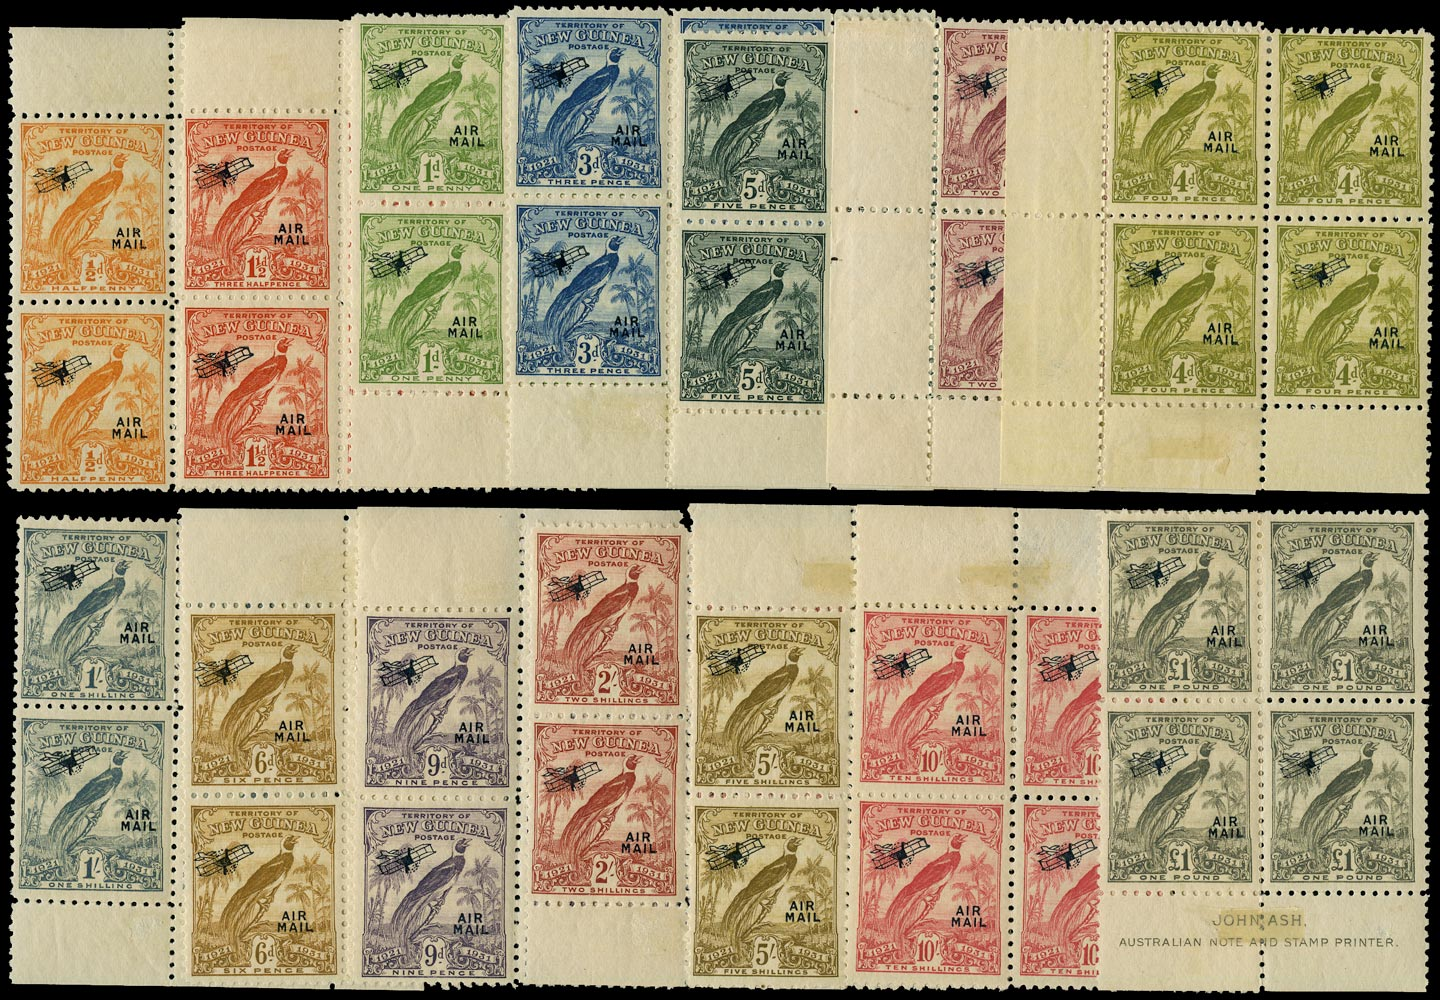 NEW GUINEA 1931  SG163/76 Mint Bird of Paradise Airmail set of 14 to £1 in blocks of 4